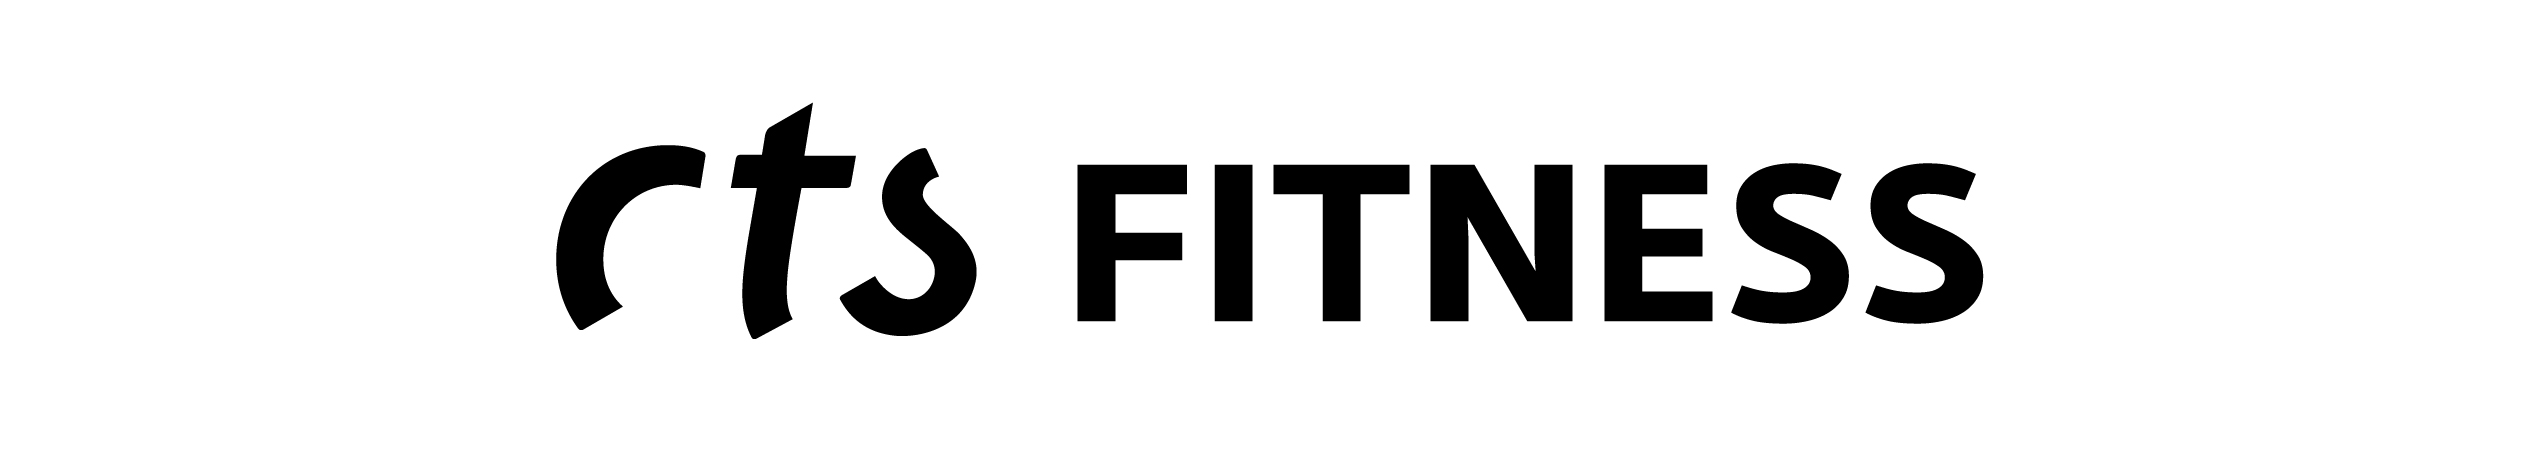 CTS_FITNESS_LOGO_BLACK